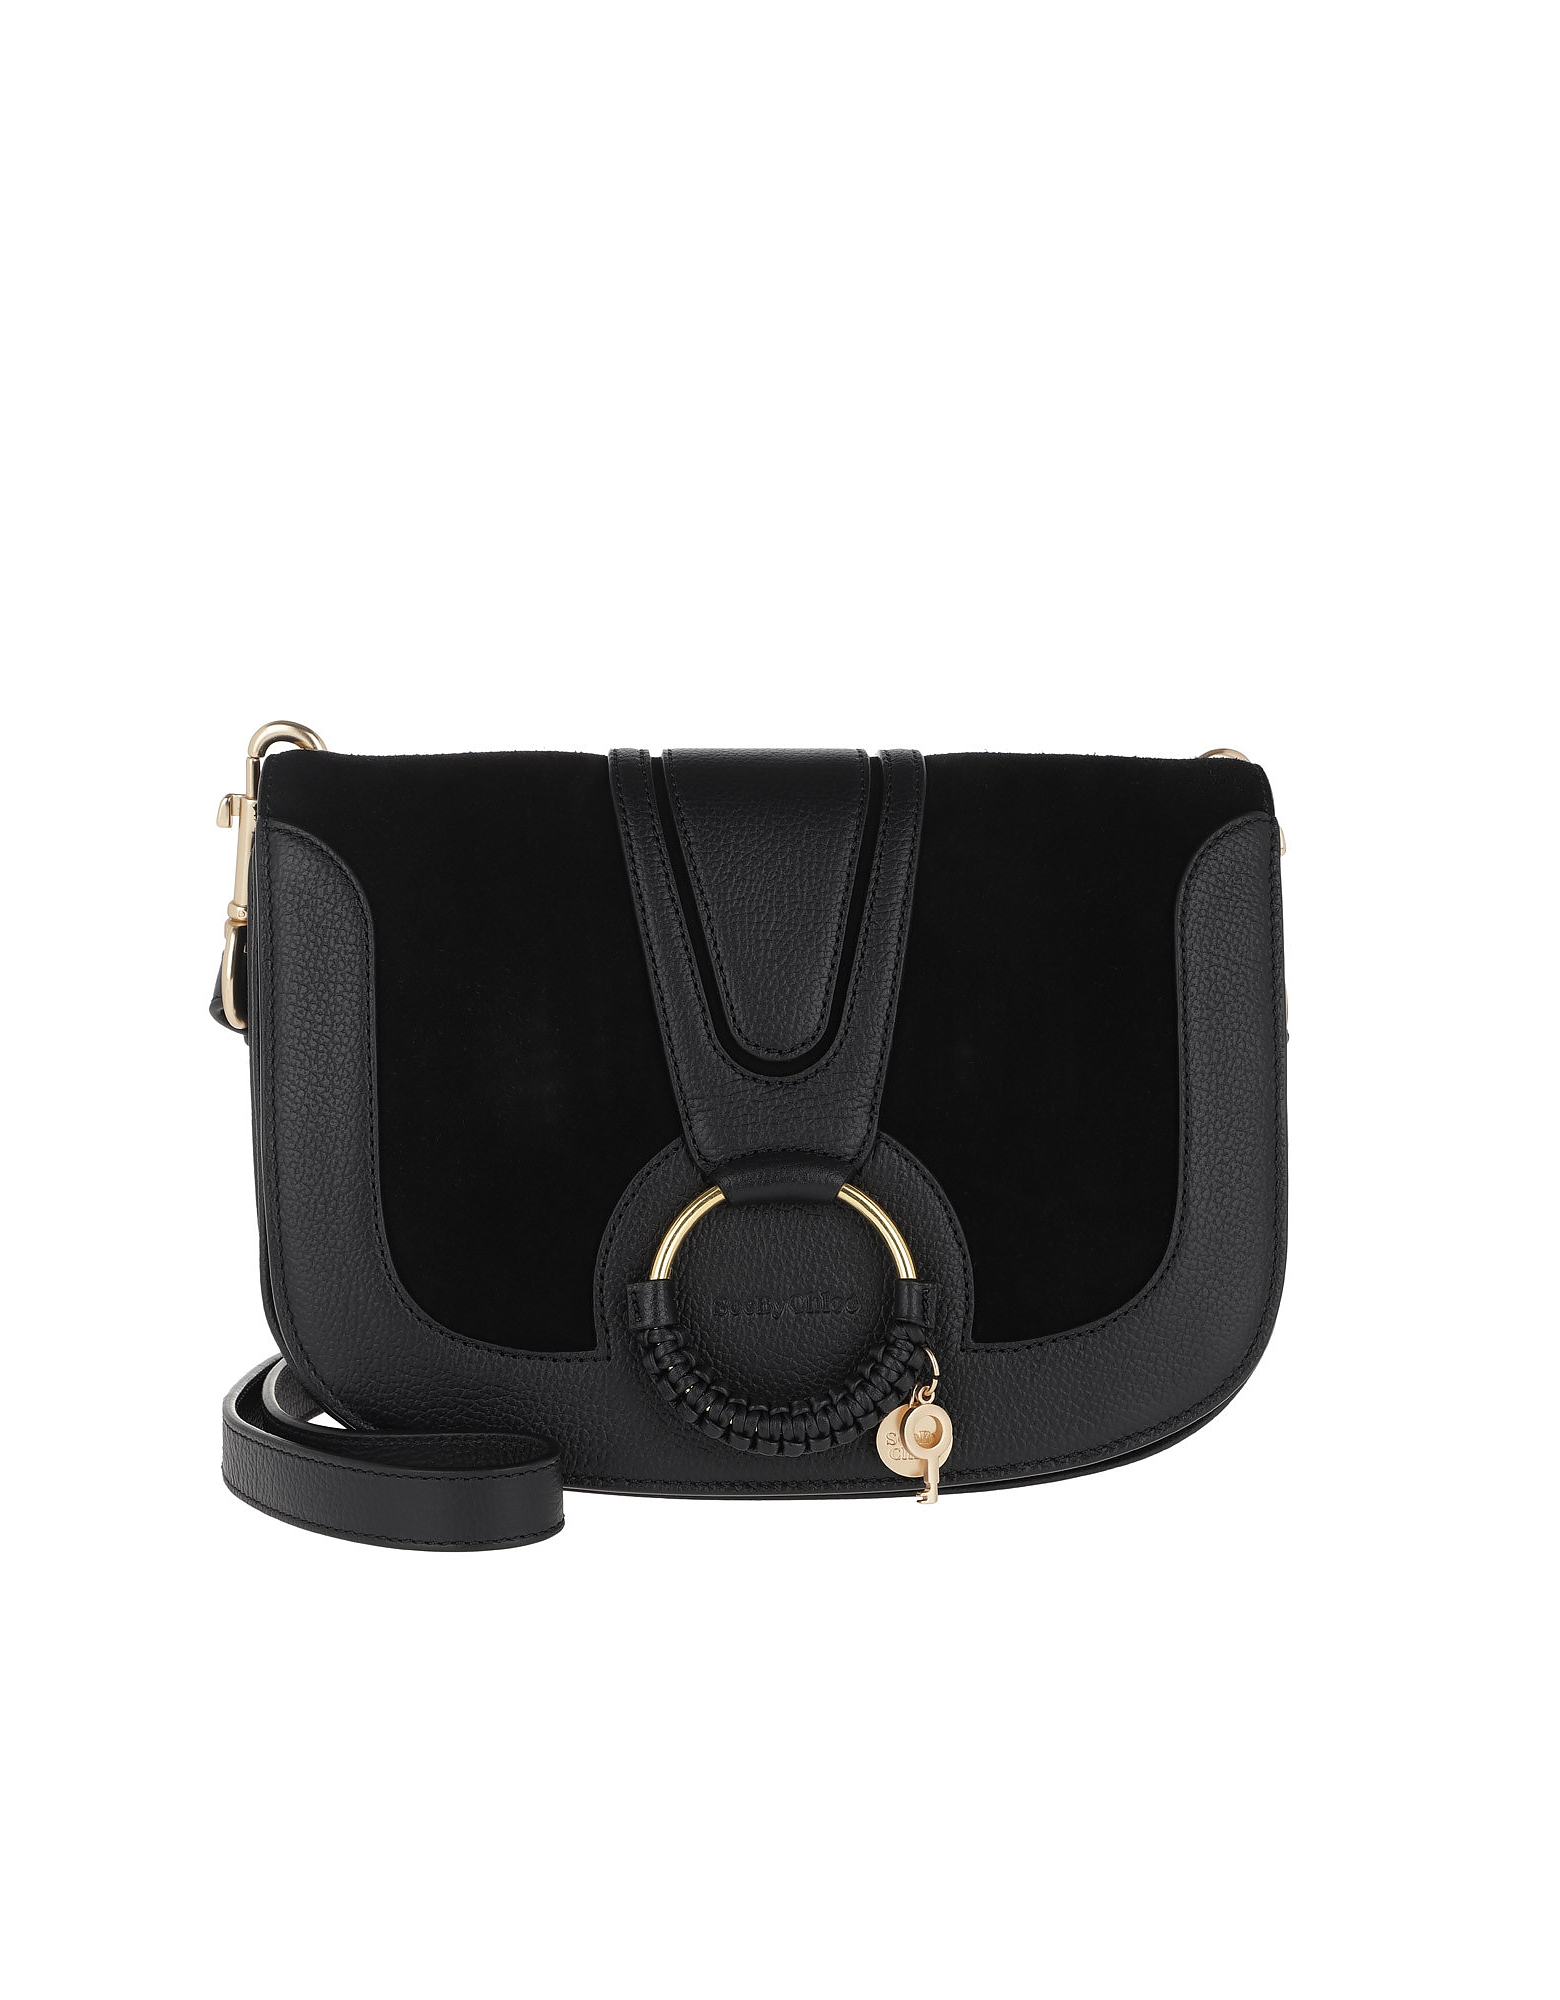 Hana Crossbody Bag Leather Black